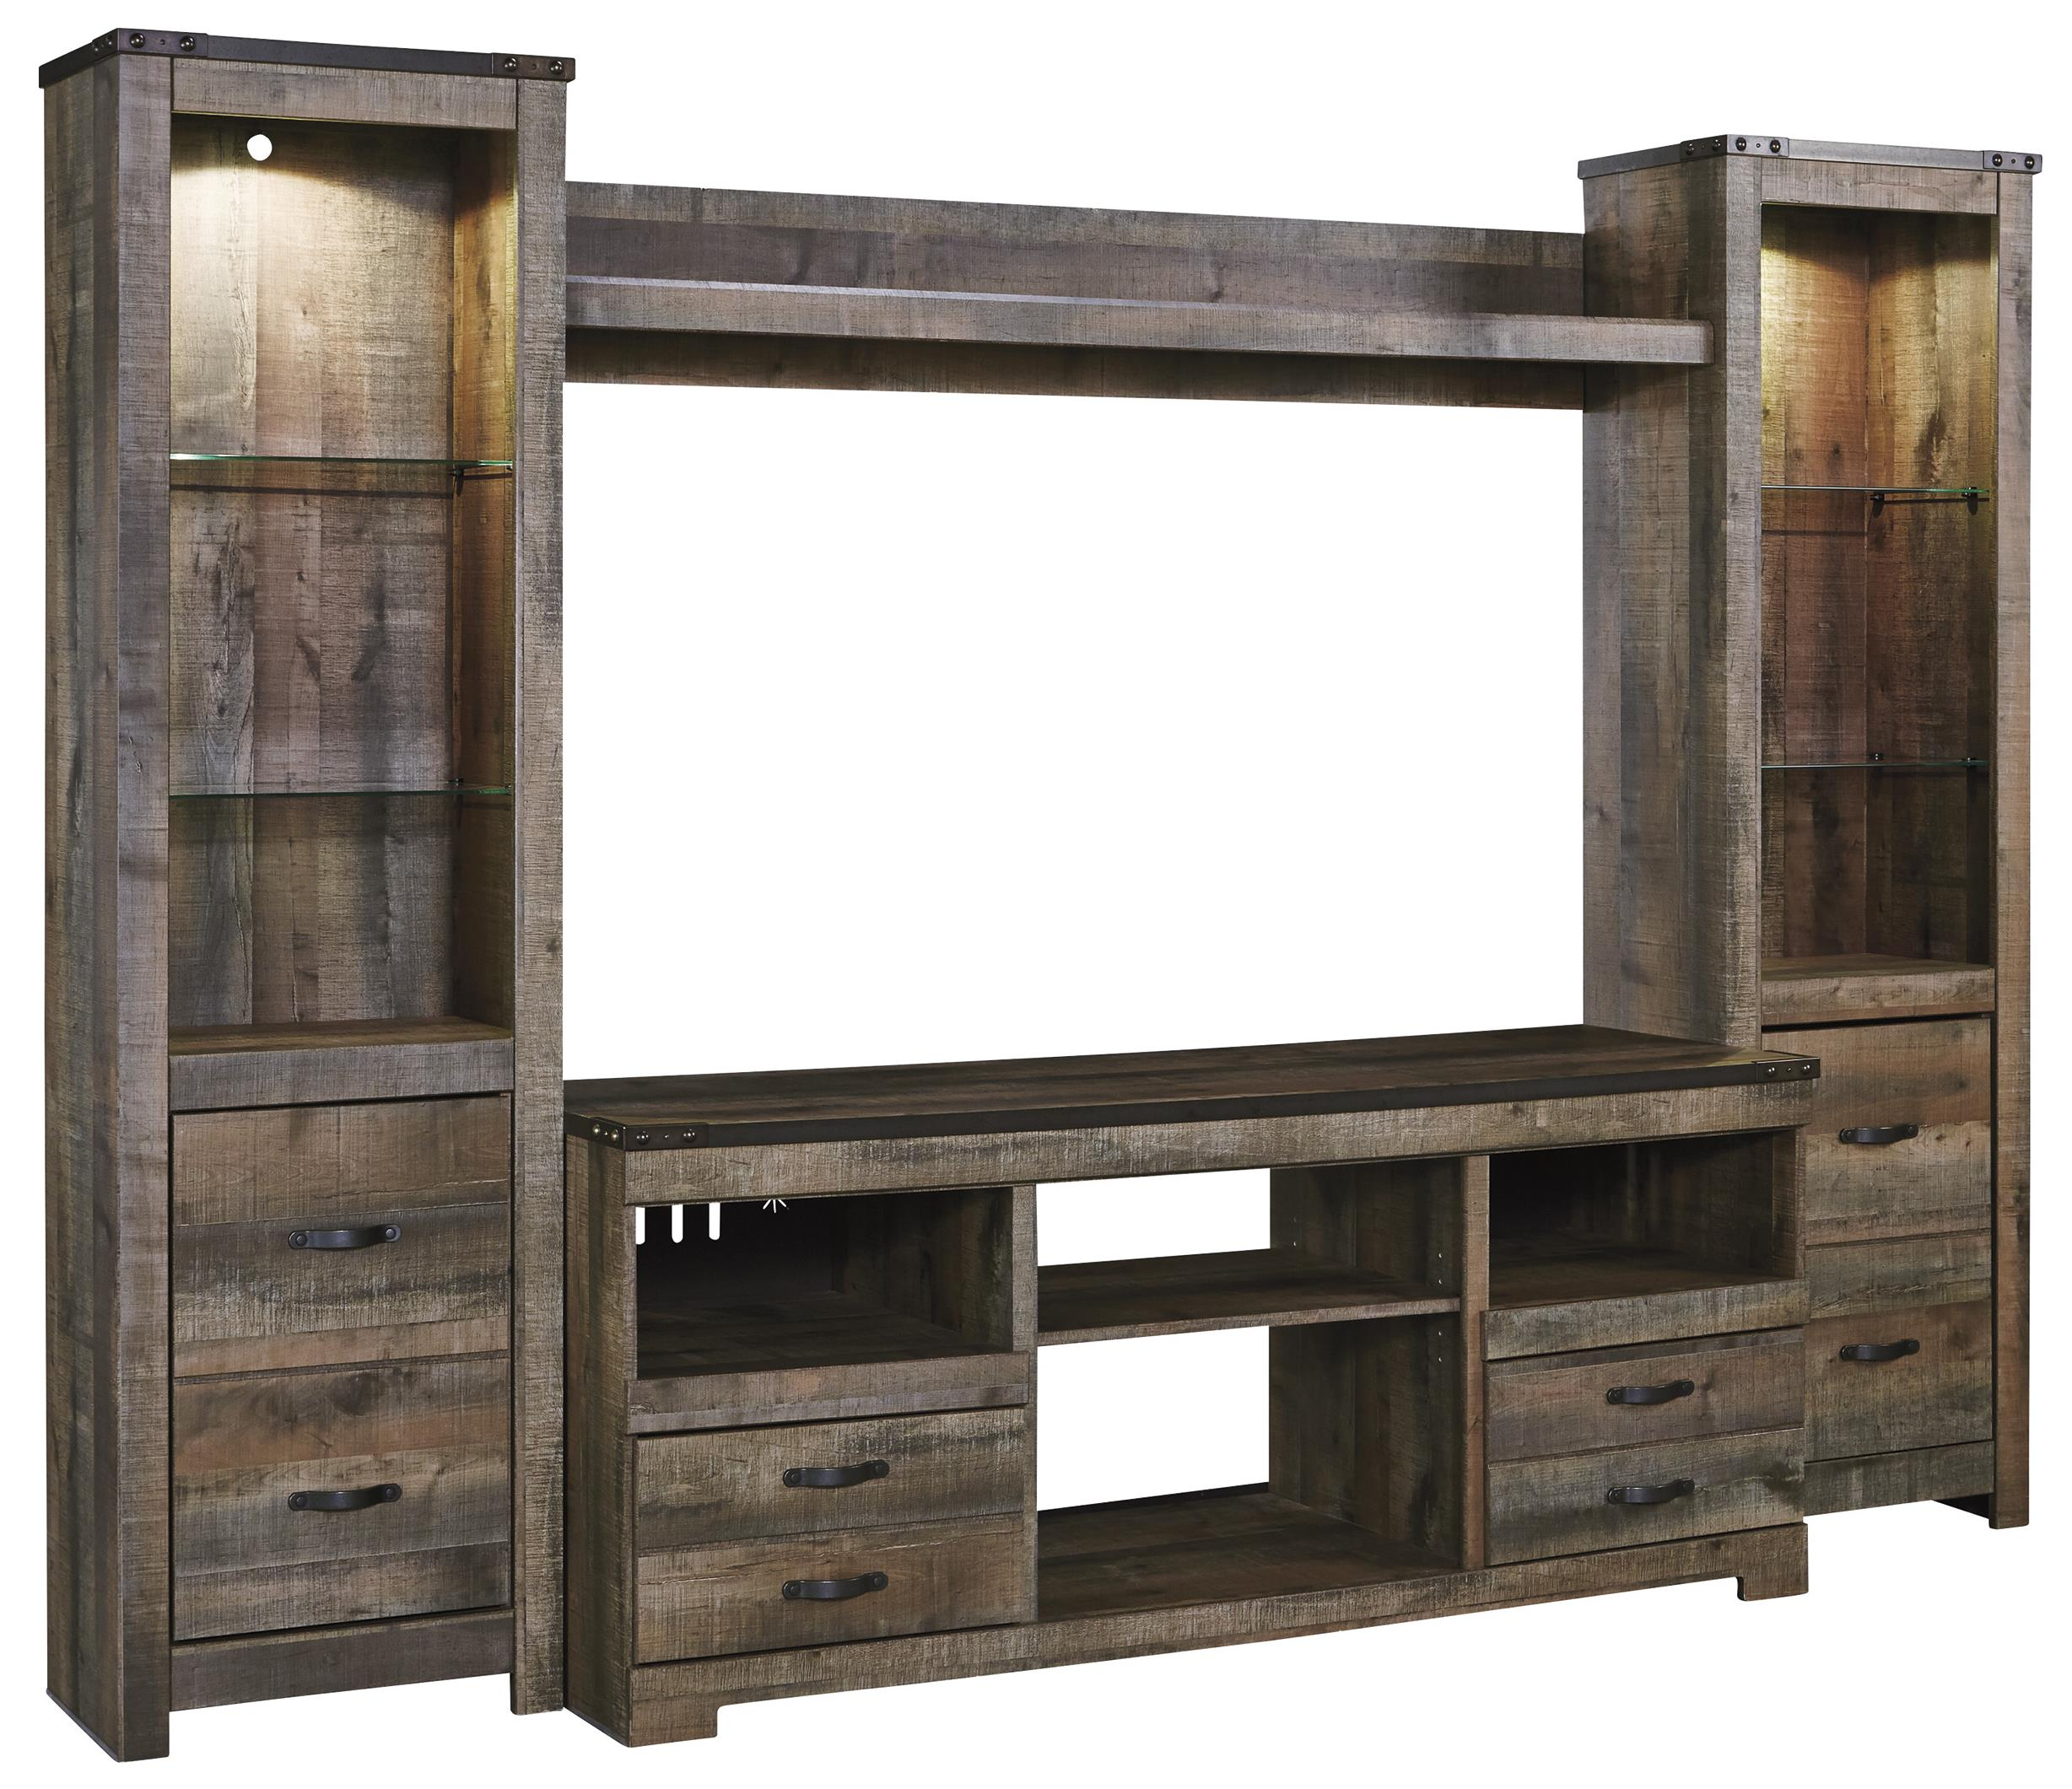 rustic large tv stand 2 tall piers w bridge by signature design by ashley wolf and gardiner. Black Bedroom Furniture Sets. Home Design Ideas